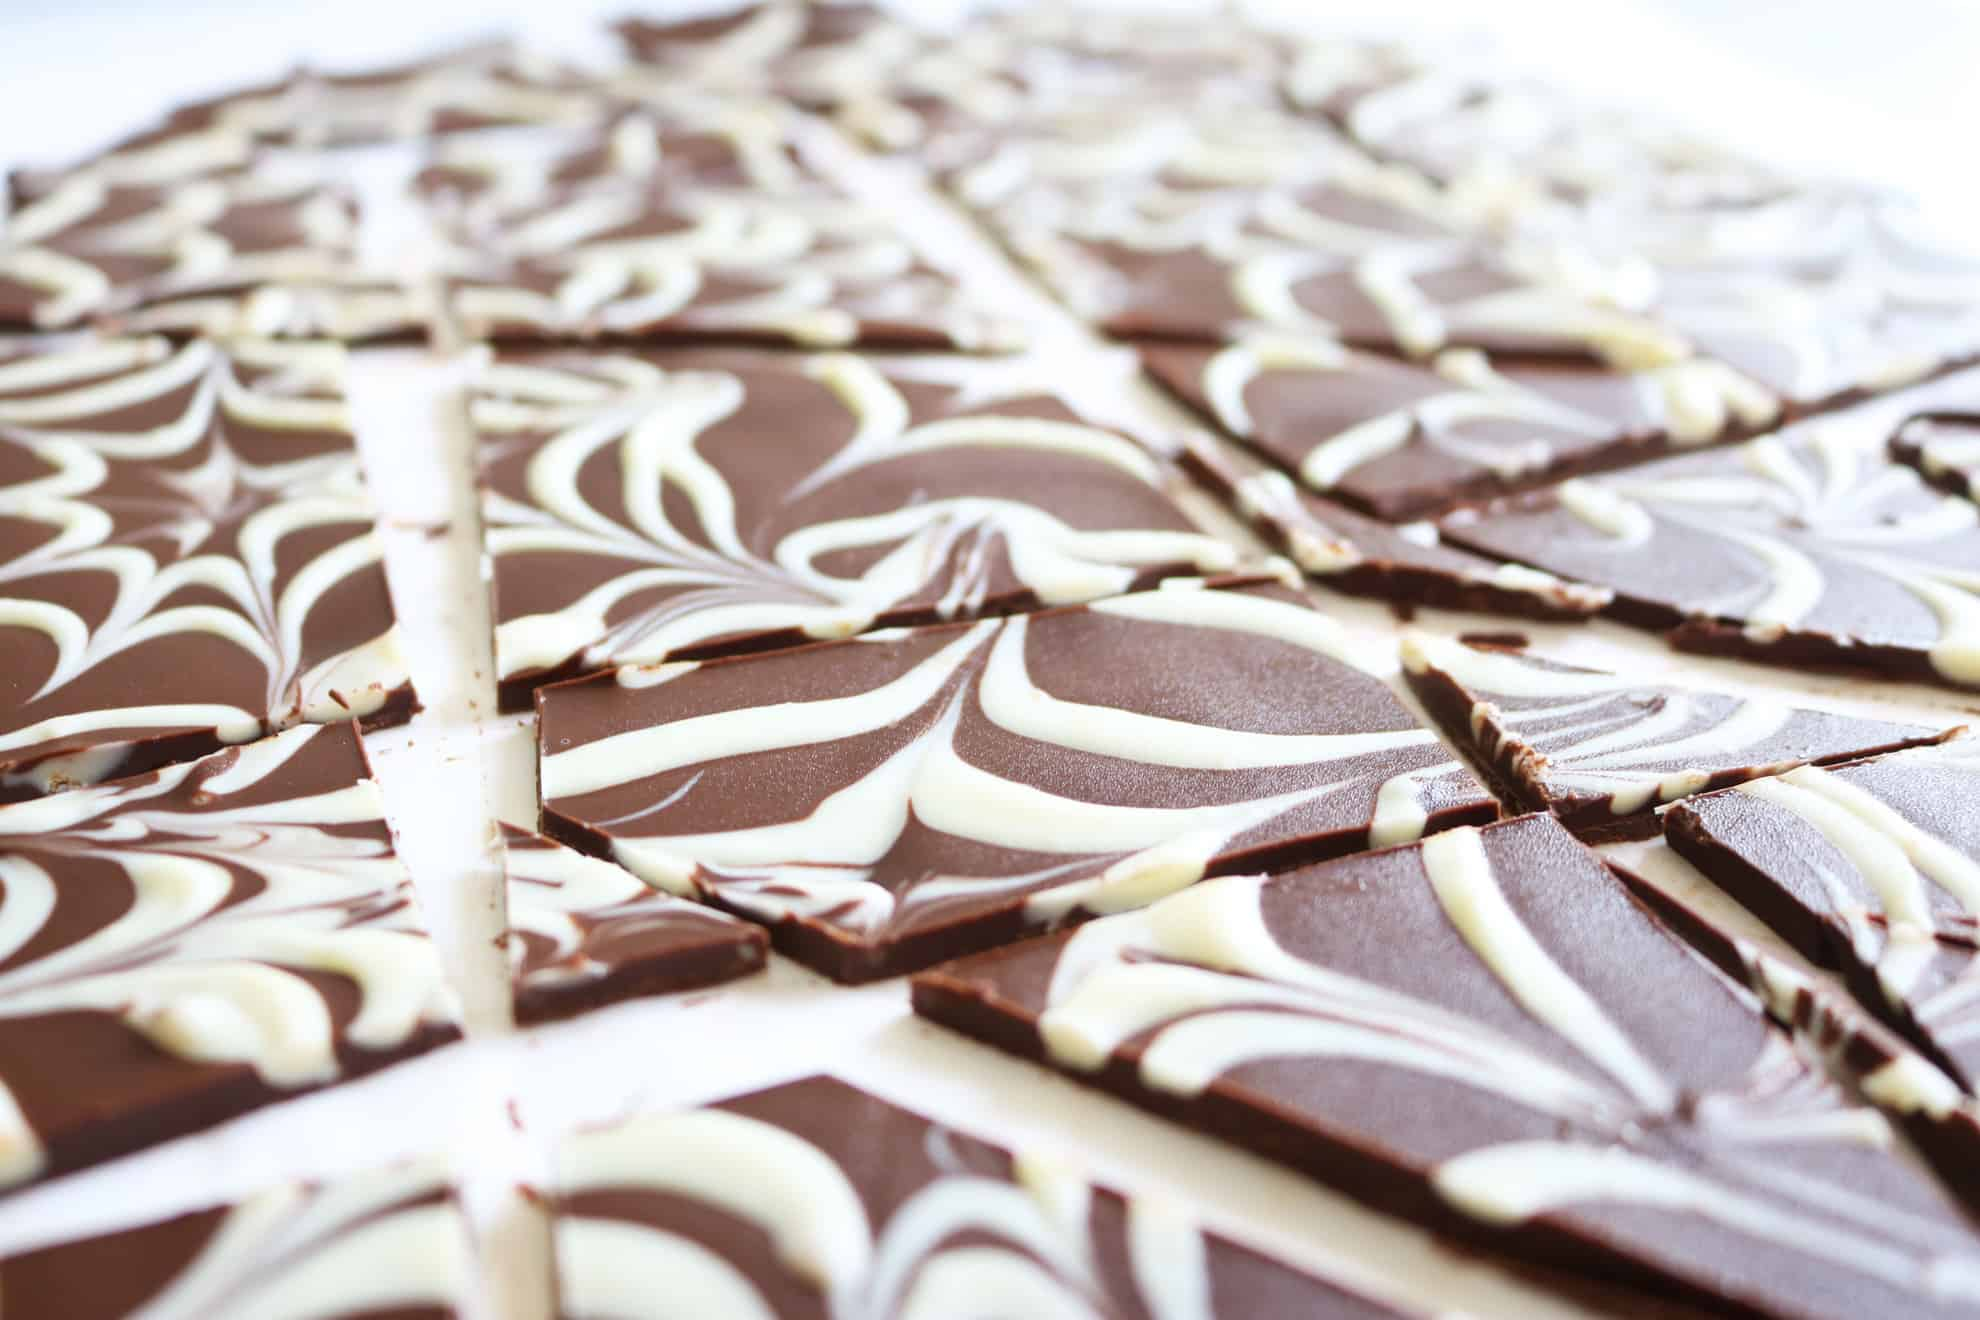 Chocolate Spiderweb Bark